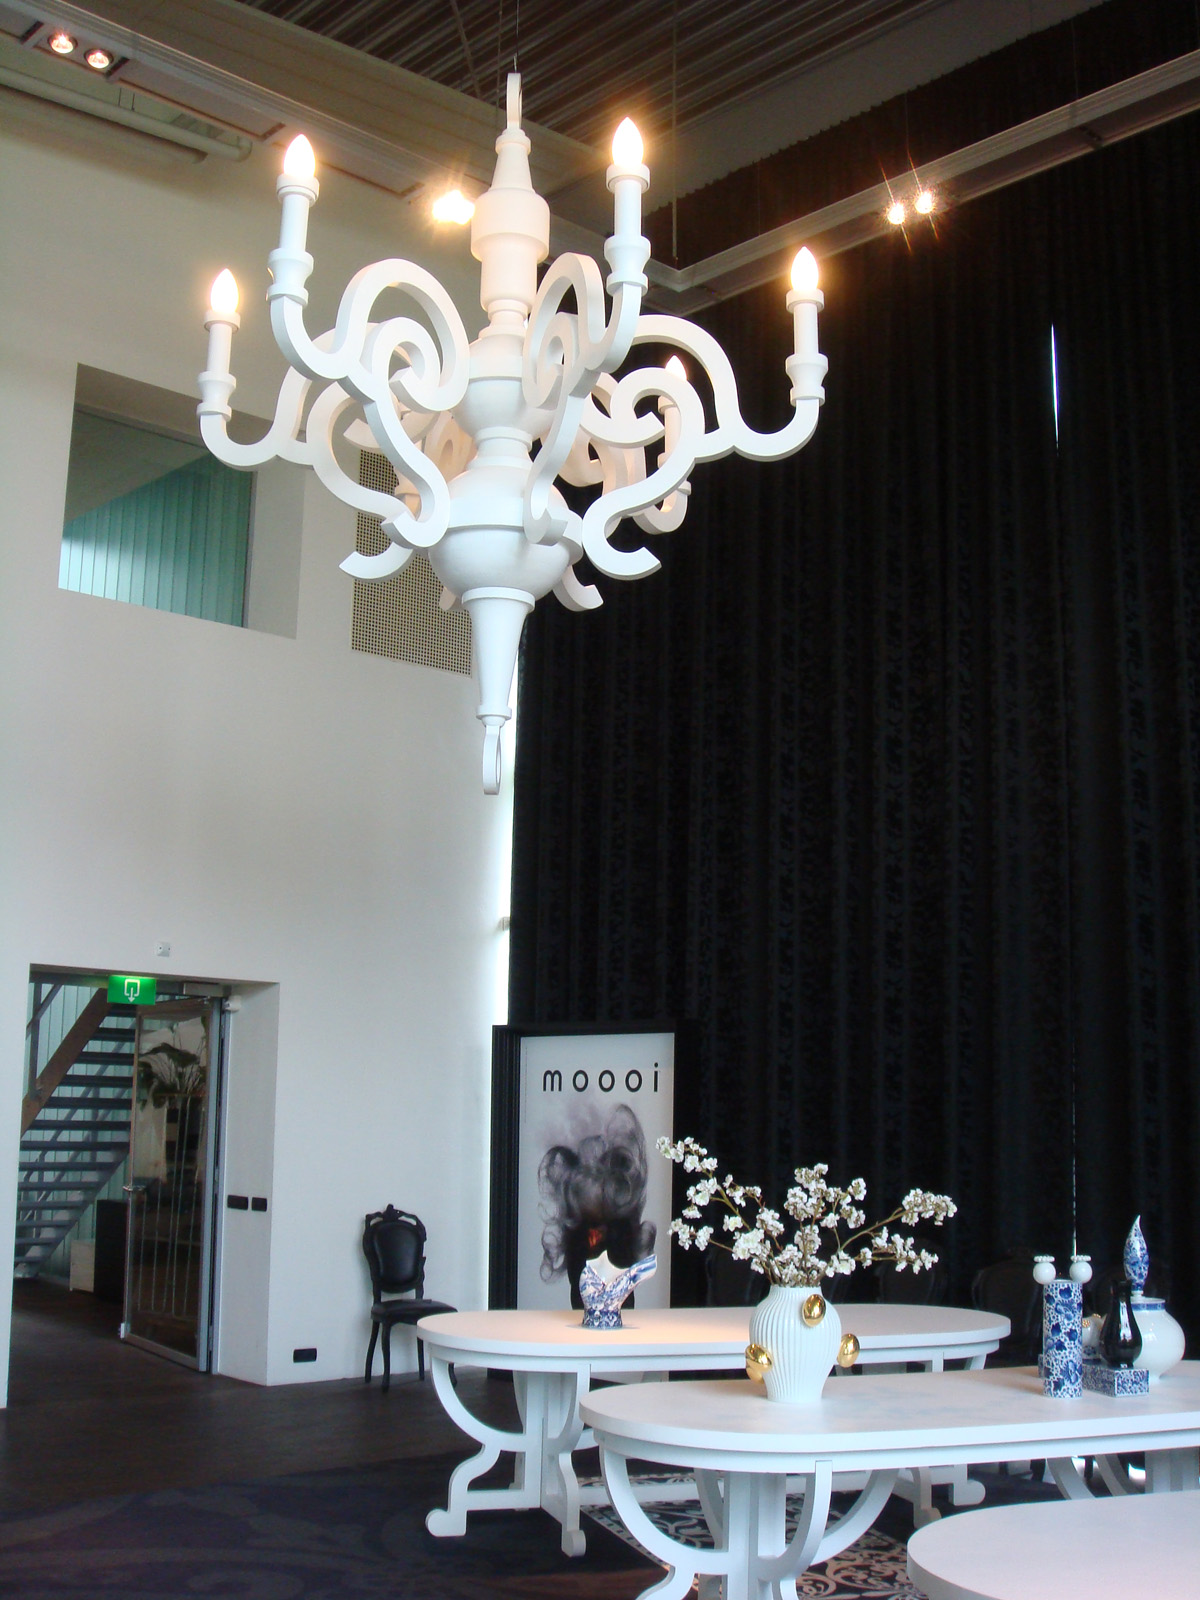 Modern interior design paper large chandelier white moooi studio job paper chandelier for moooi click above image to enlarge moooi design is available from stardust image credit stardust arubaitofo Image collections